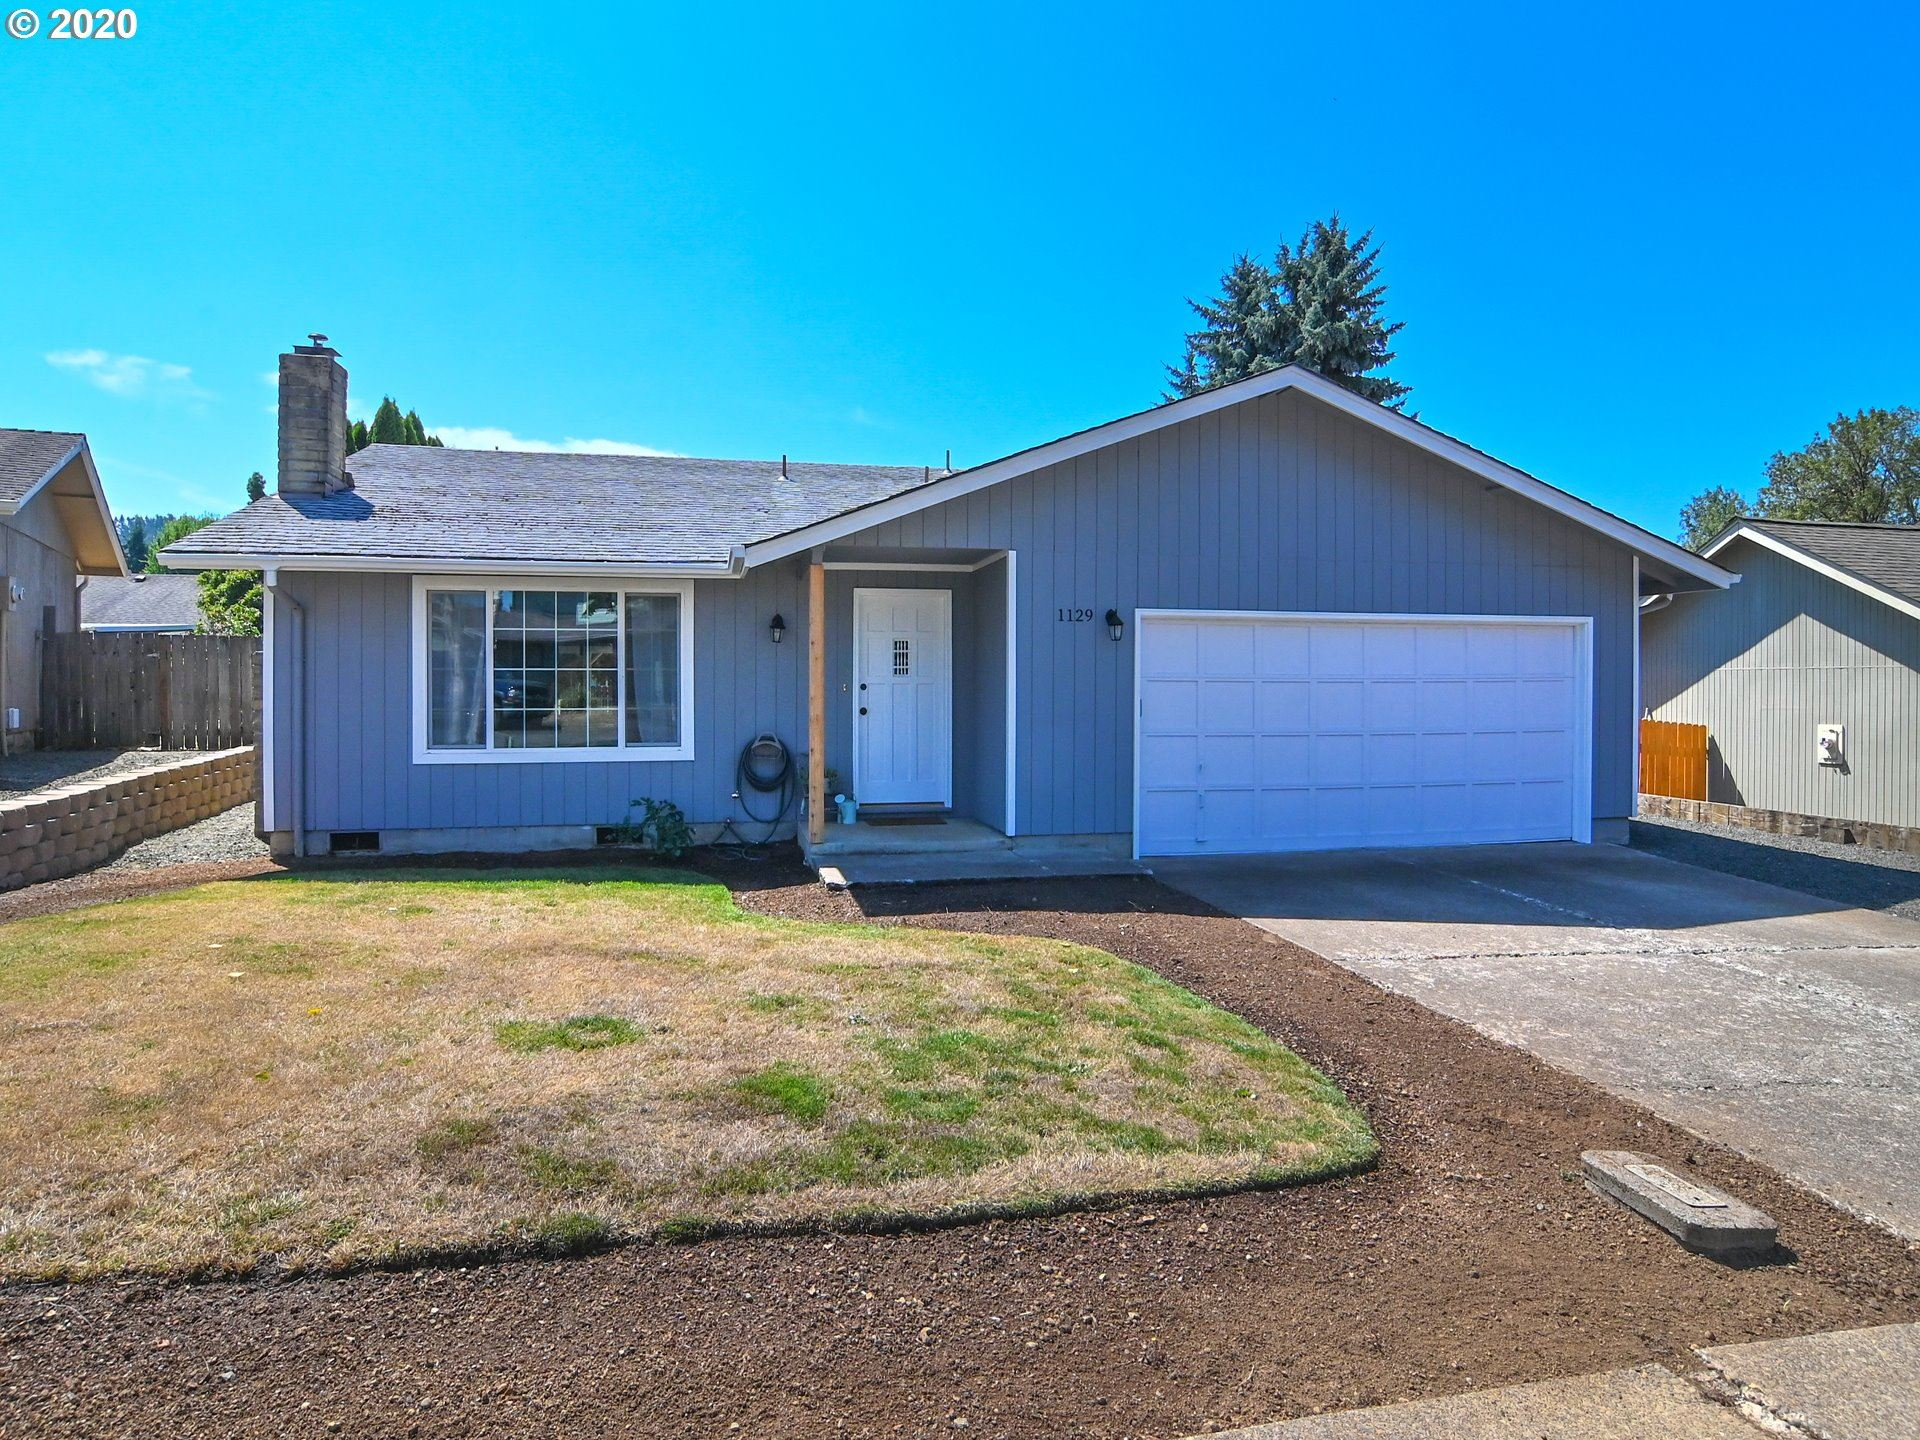 Photo for 1129 CEDAR PL, Creswell, OR 97426 (MLS # 20230904)